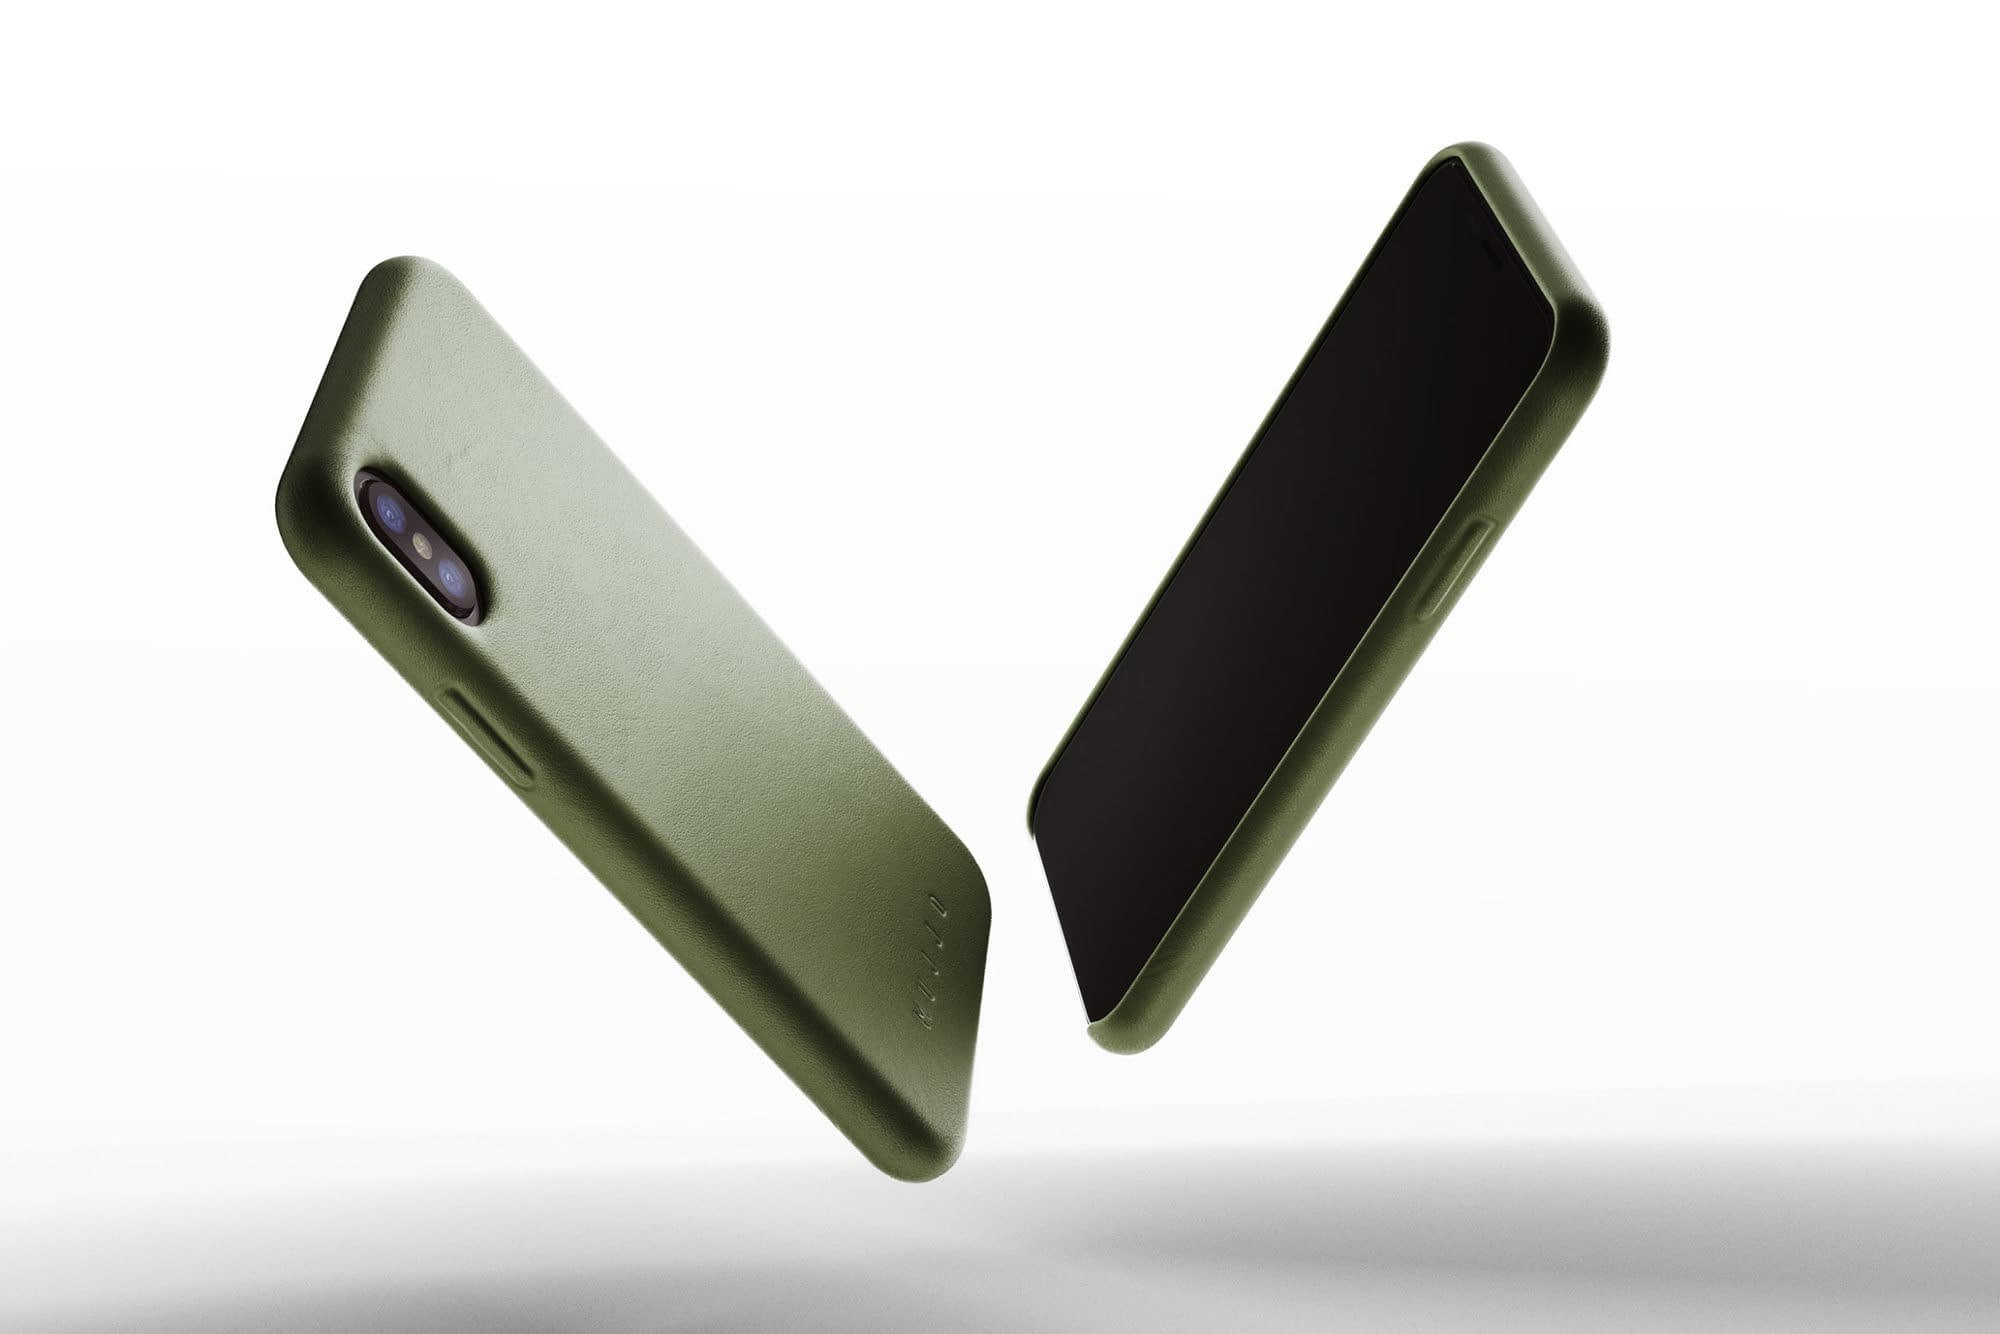 Full leather case for iPhone X Olive 01